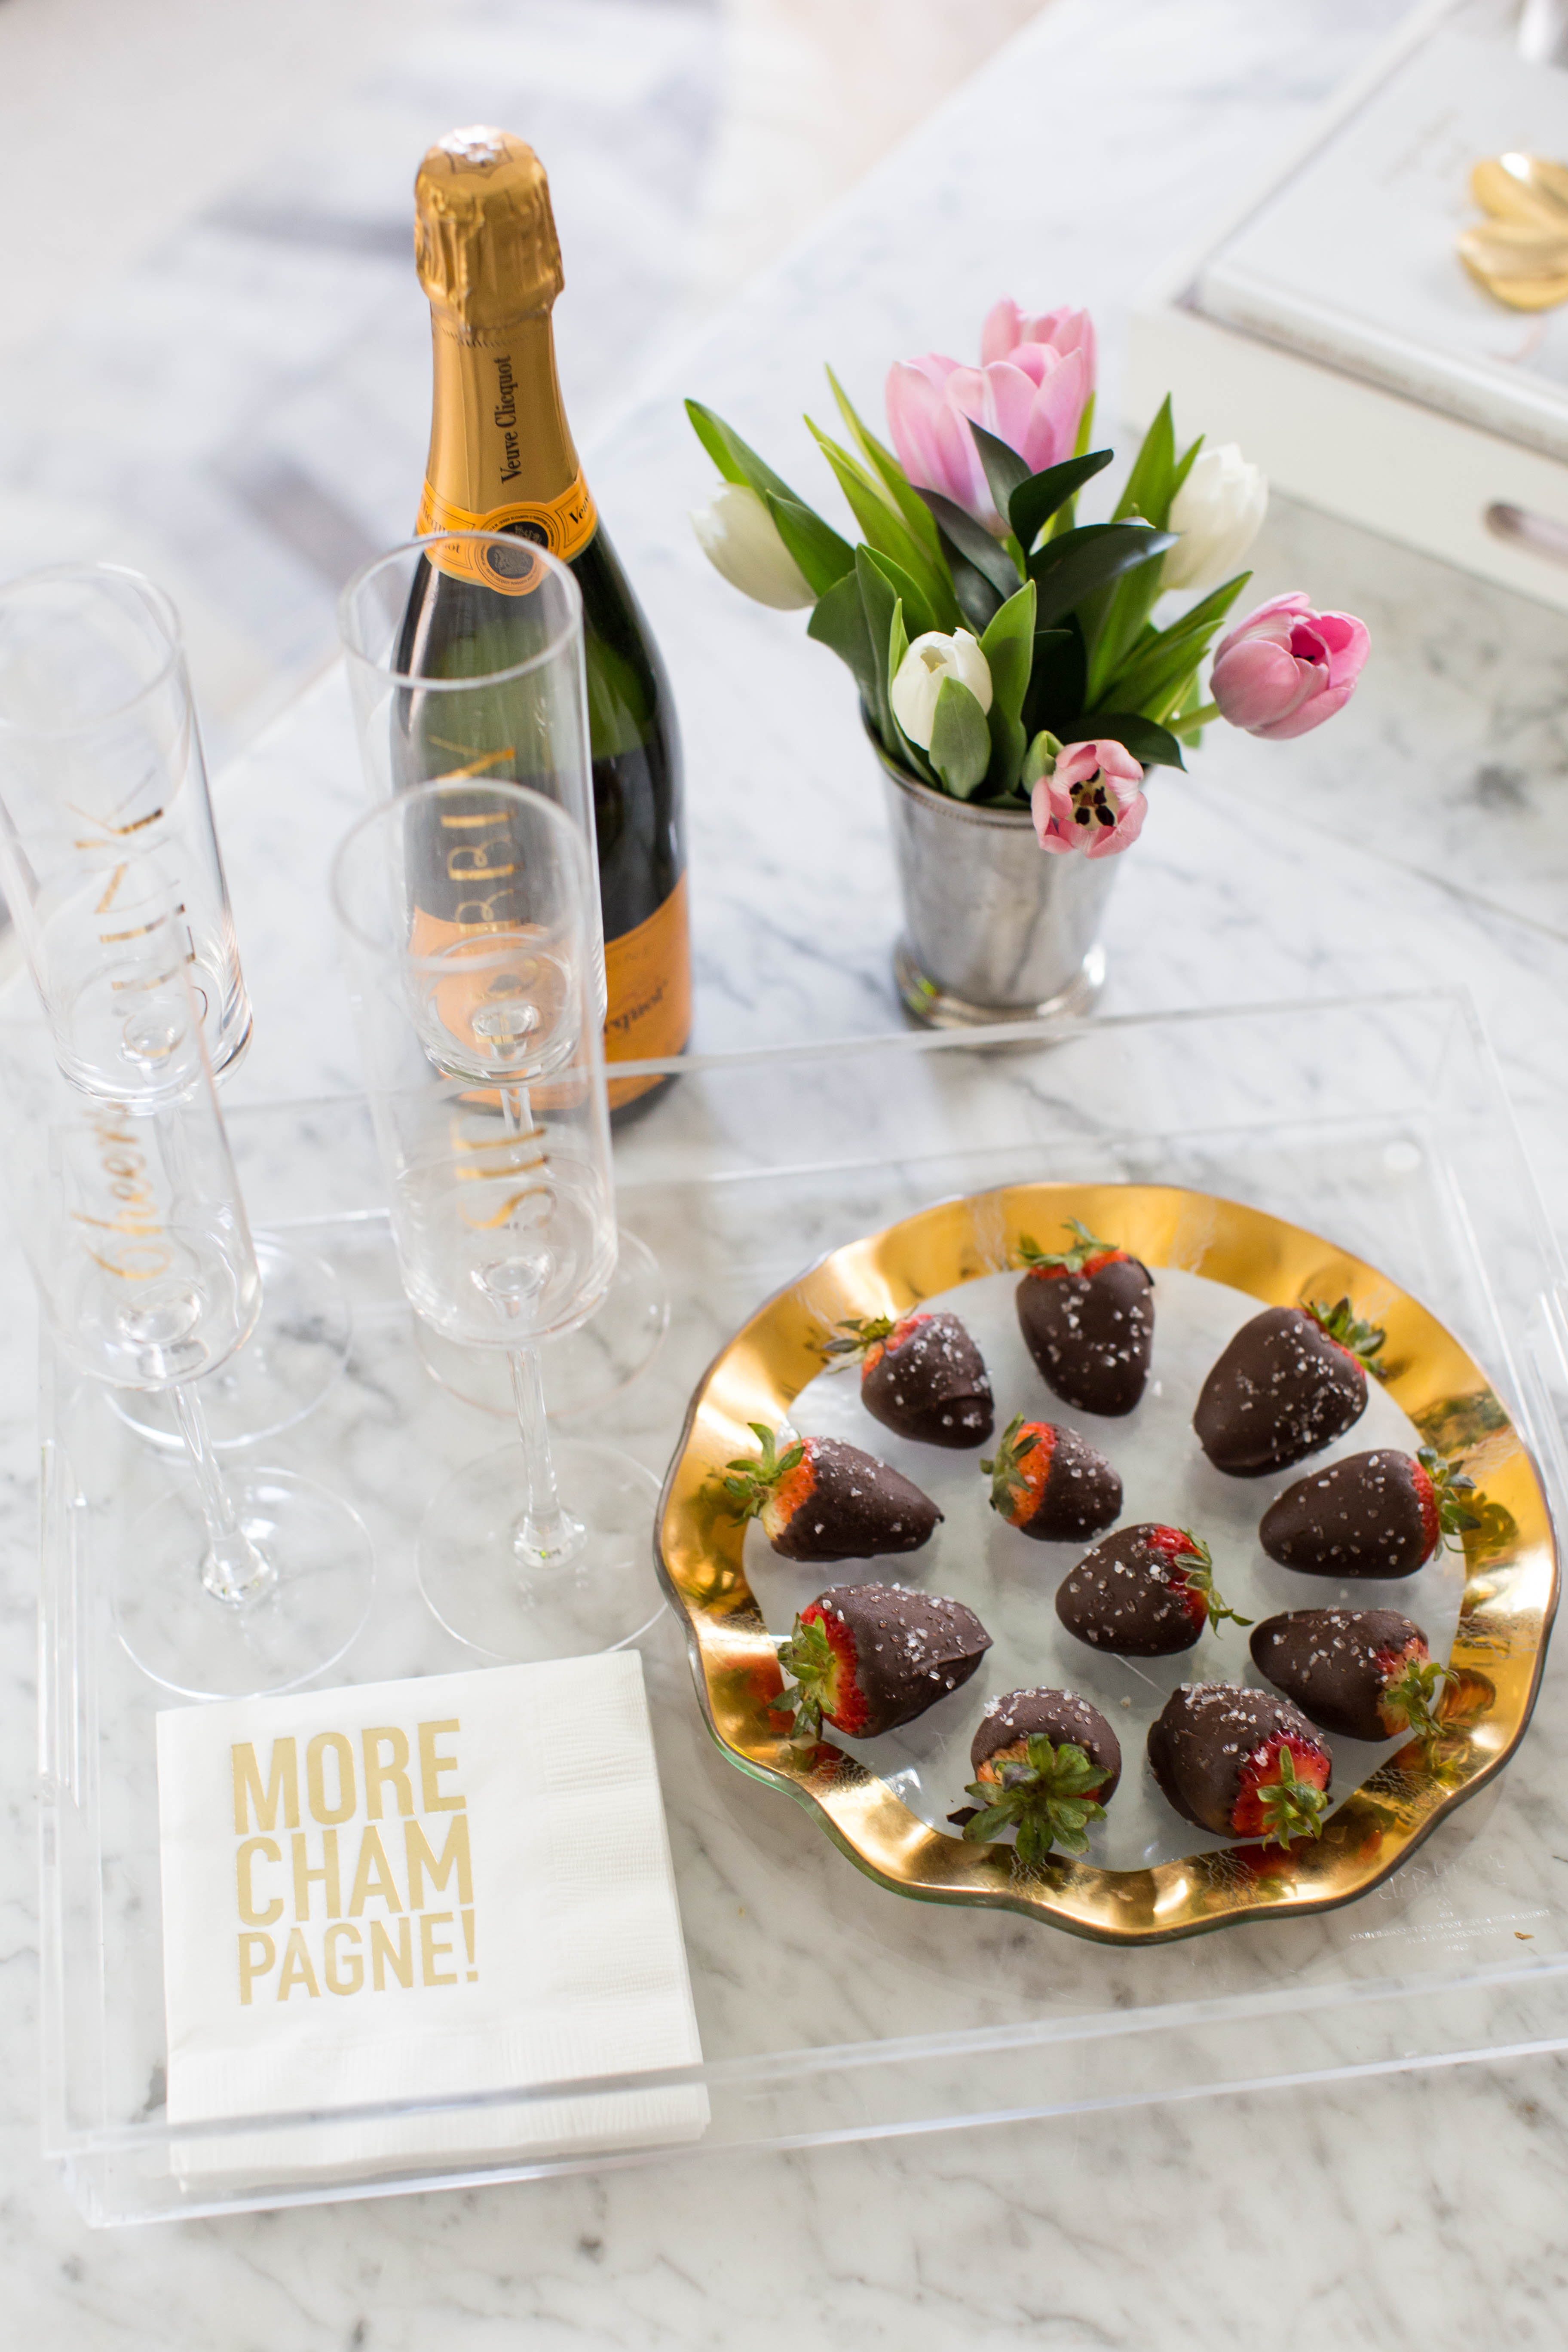 Decadent Salted Chocolate Champagne Strawberries by NC lifestyle blogger Amy of Coffee Beans and Bobby Pins